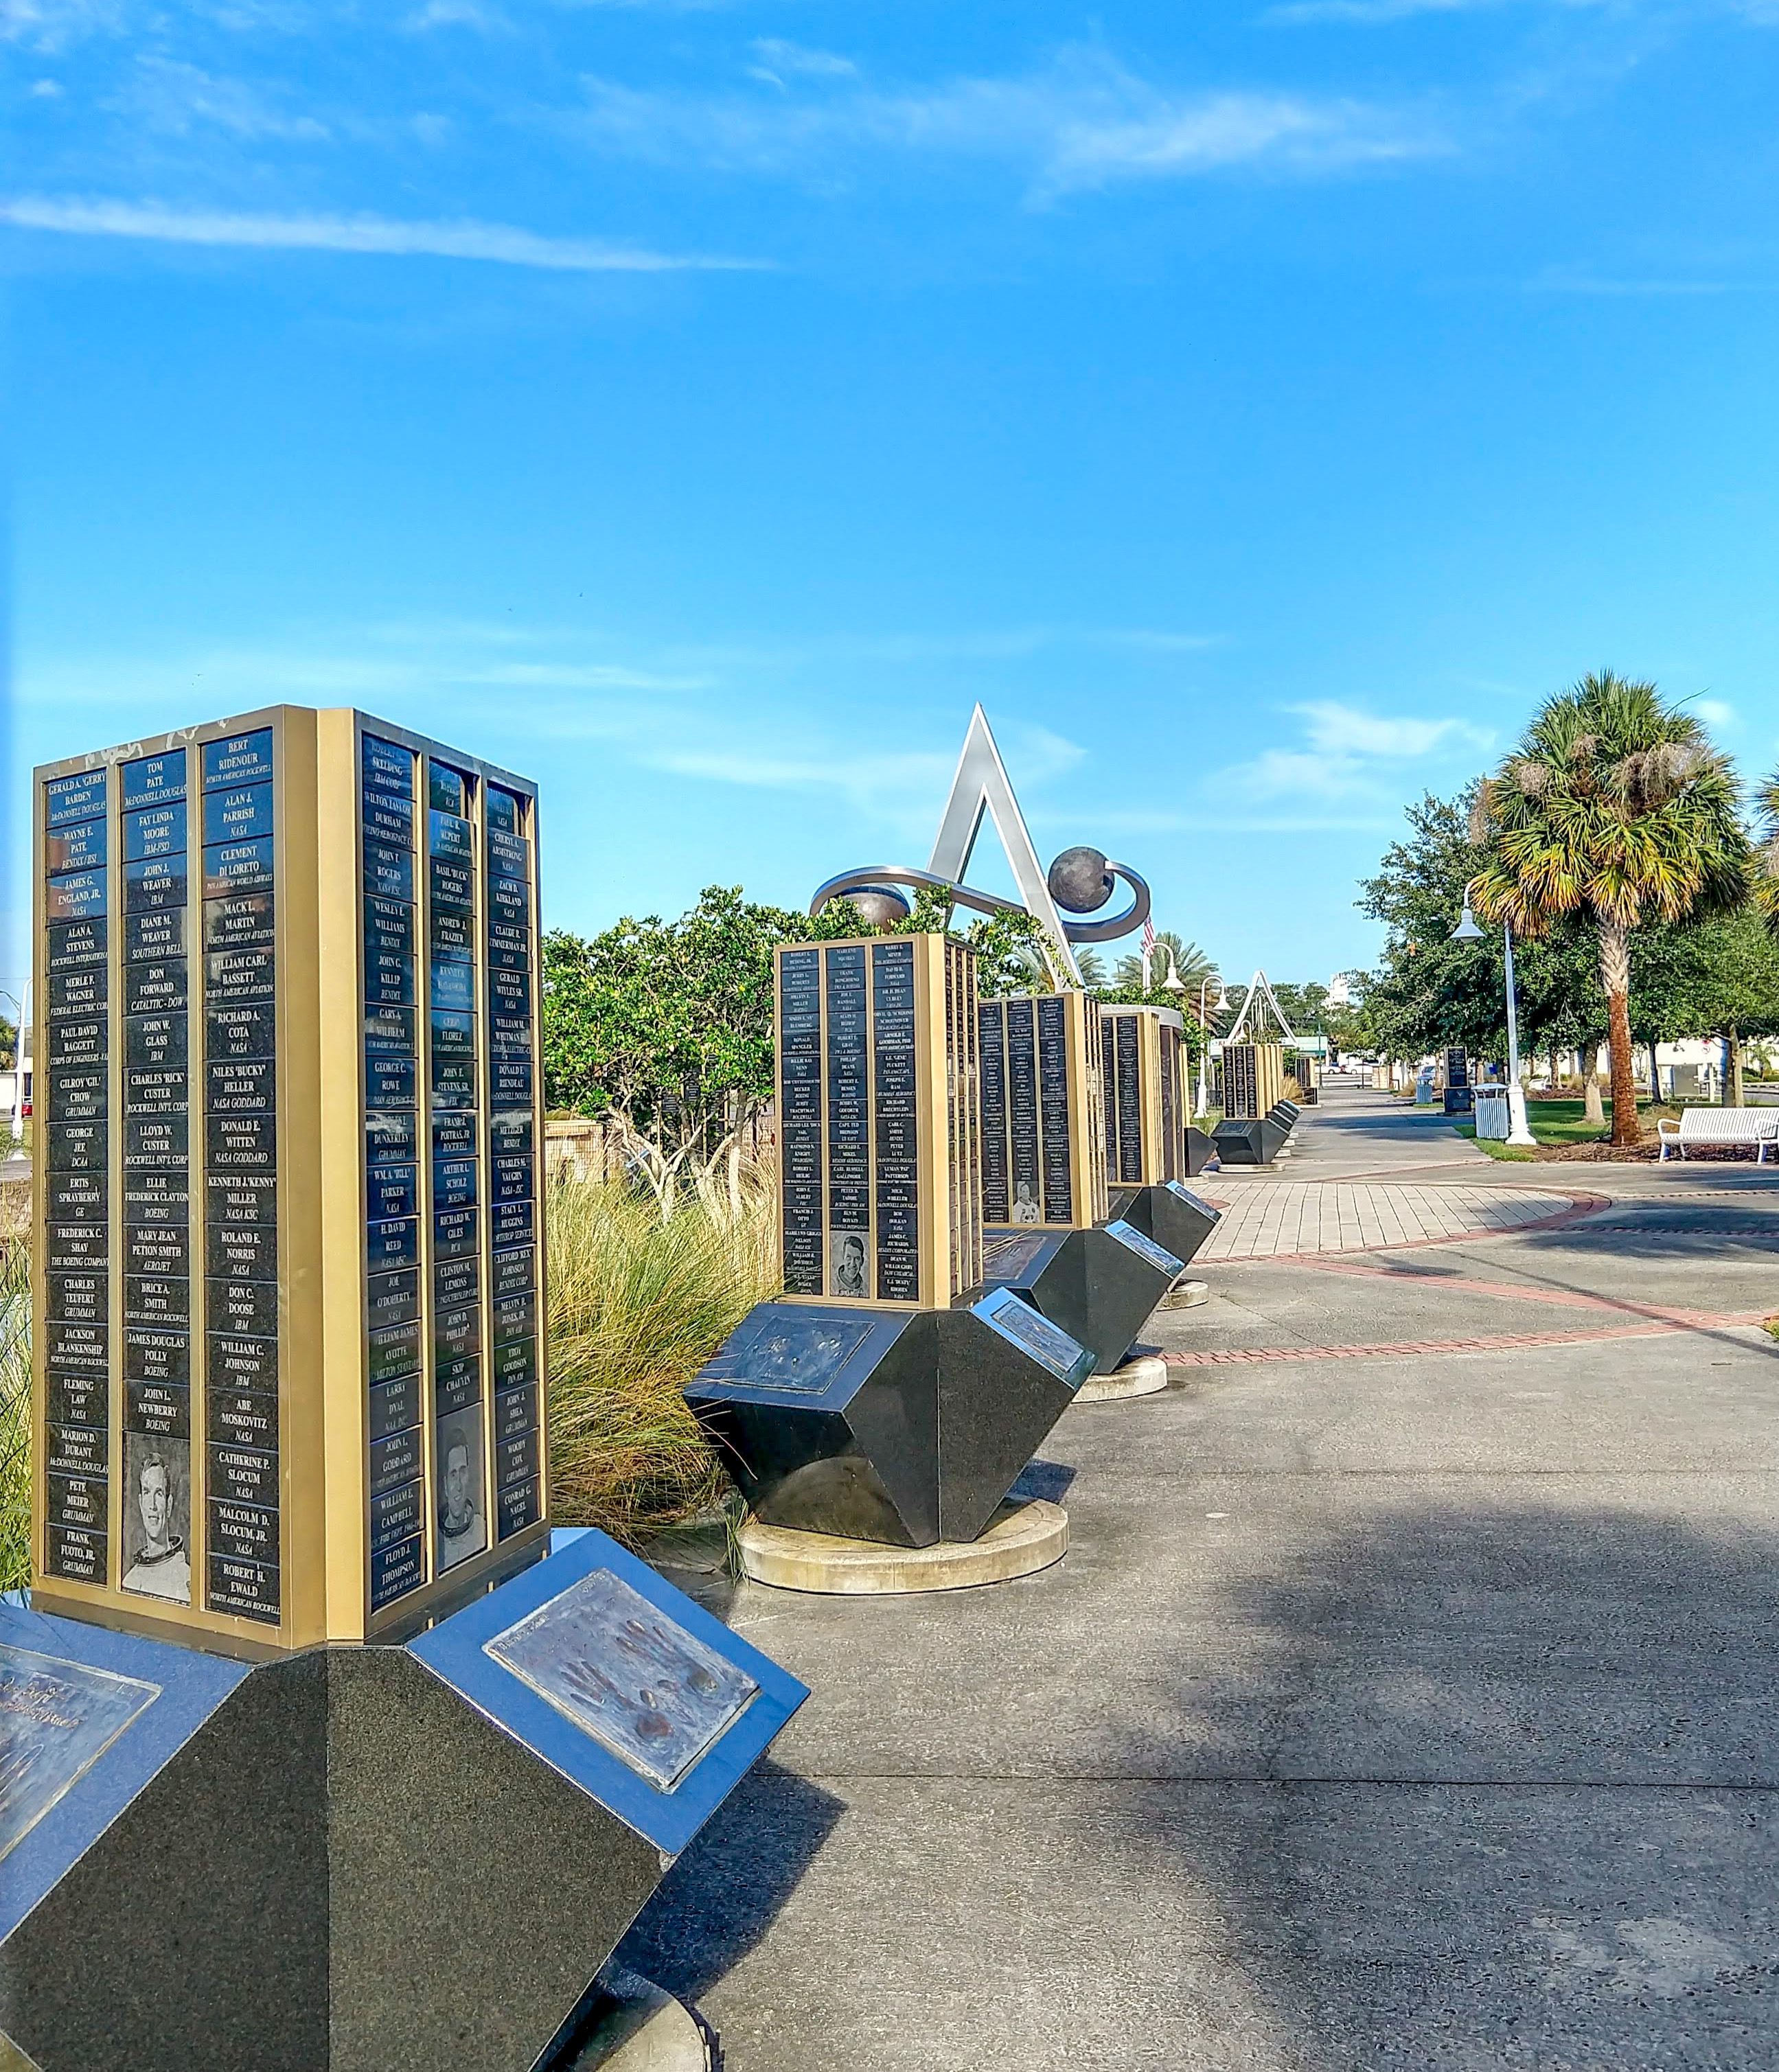 titusville, astronaut, walk of fame, space view, park